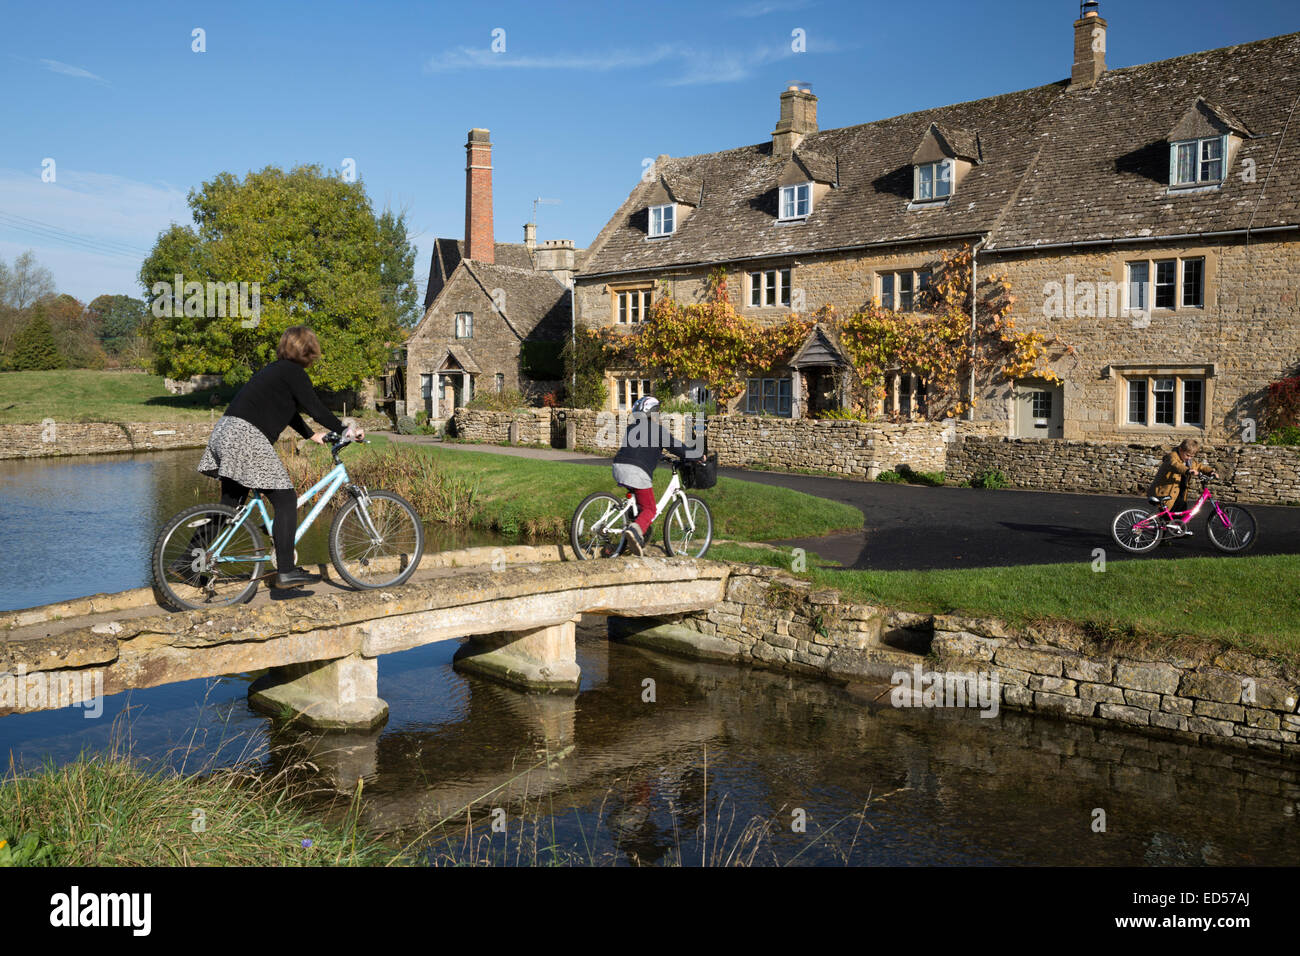 Stone bridge and Cotswold stone cottages on the River Eye, Lower Slaughter, Cotswolds, Gloucestershire, England, - Stock Image